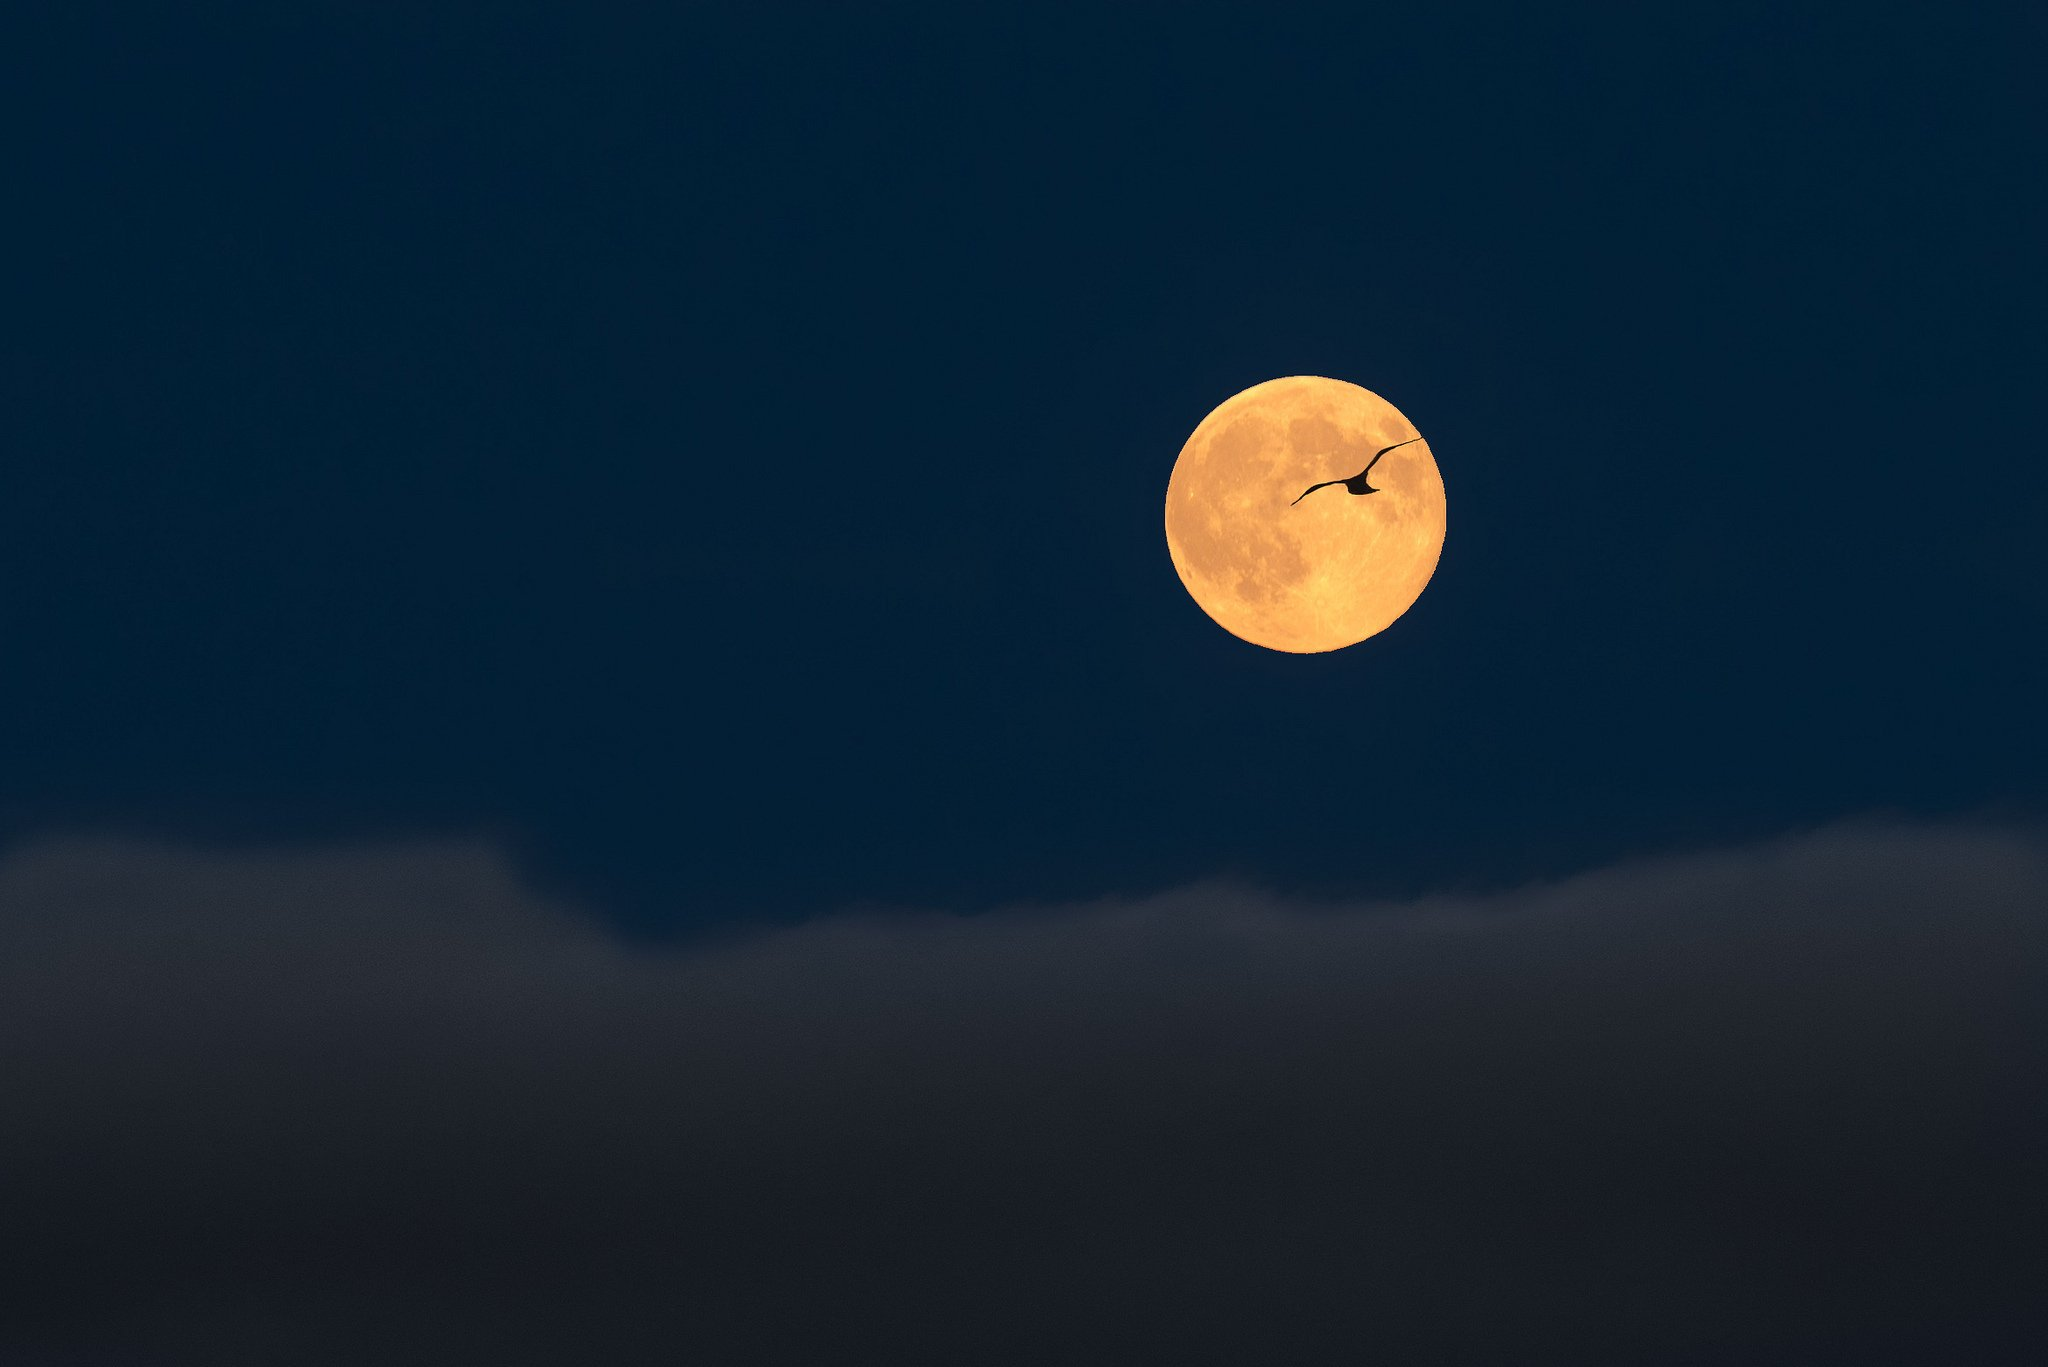 Big Size Wallpapers With Quotes Full Moon Sky Clouds Birds Flight Silhouette Landscape